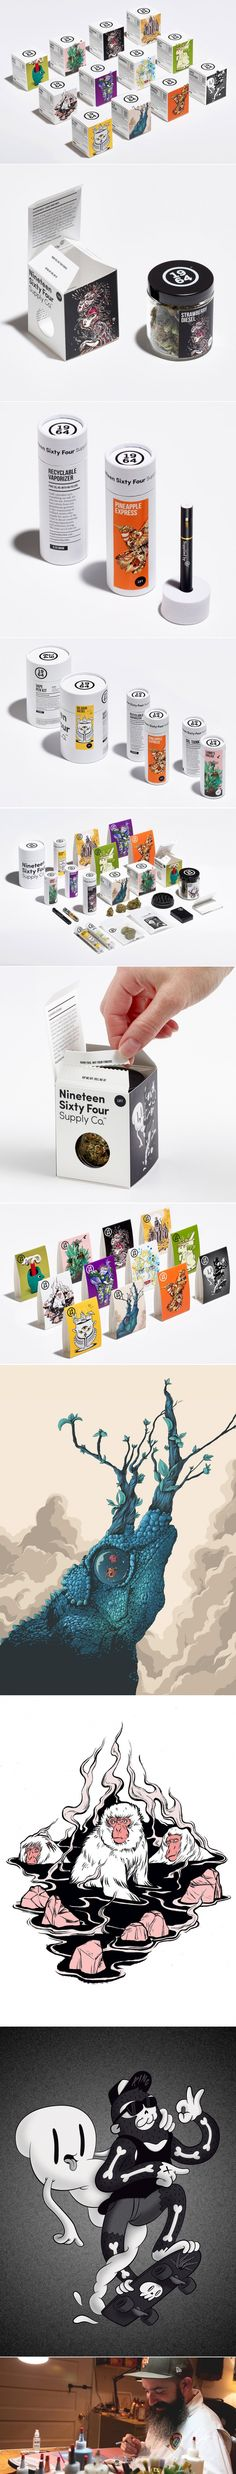 This Cannabis Packaging Comes With Awesome Illustrations — The Dieline | Packaging & Branding Design & Innovation News